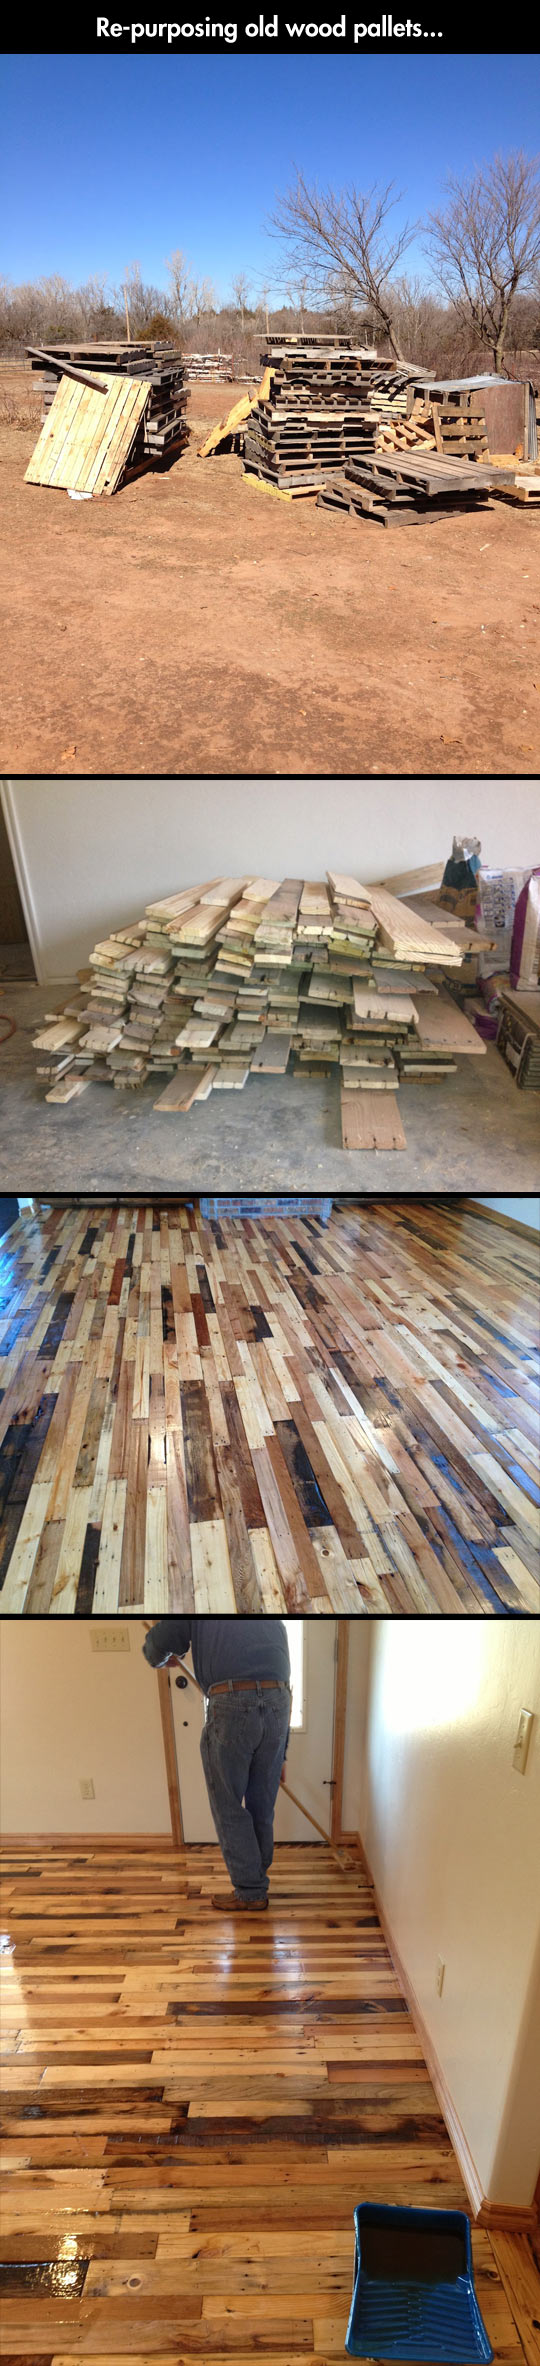 Old Woods Pallets